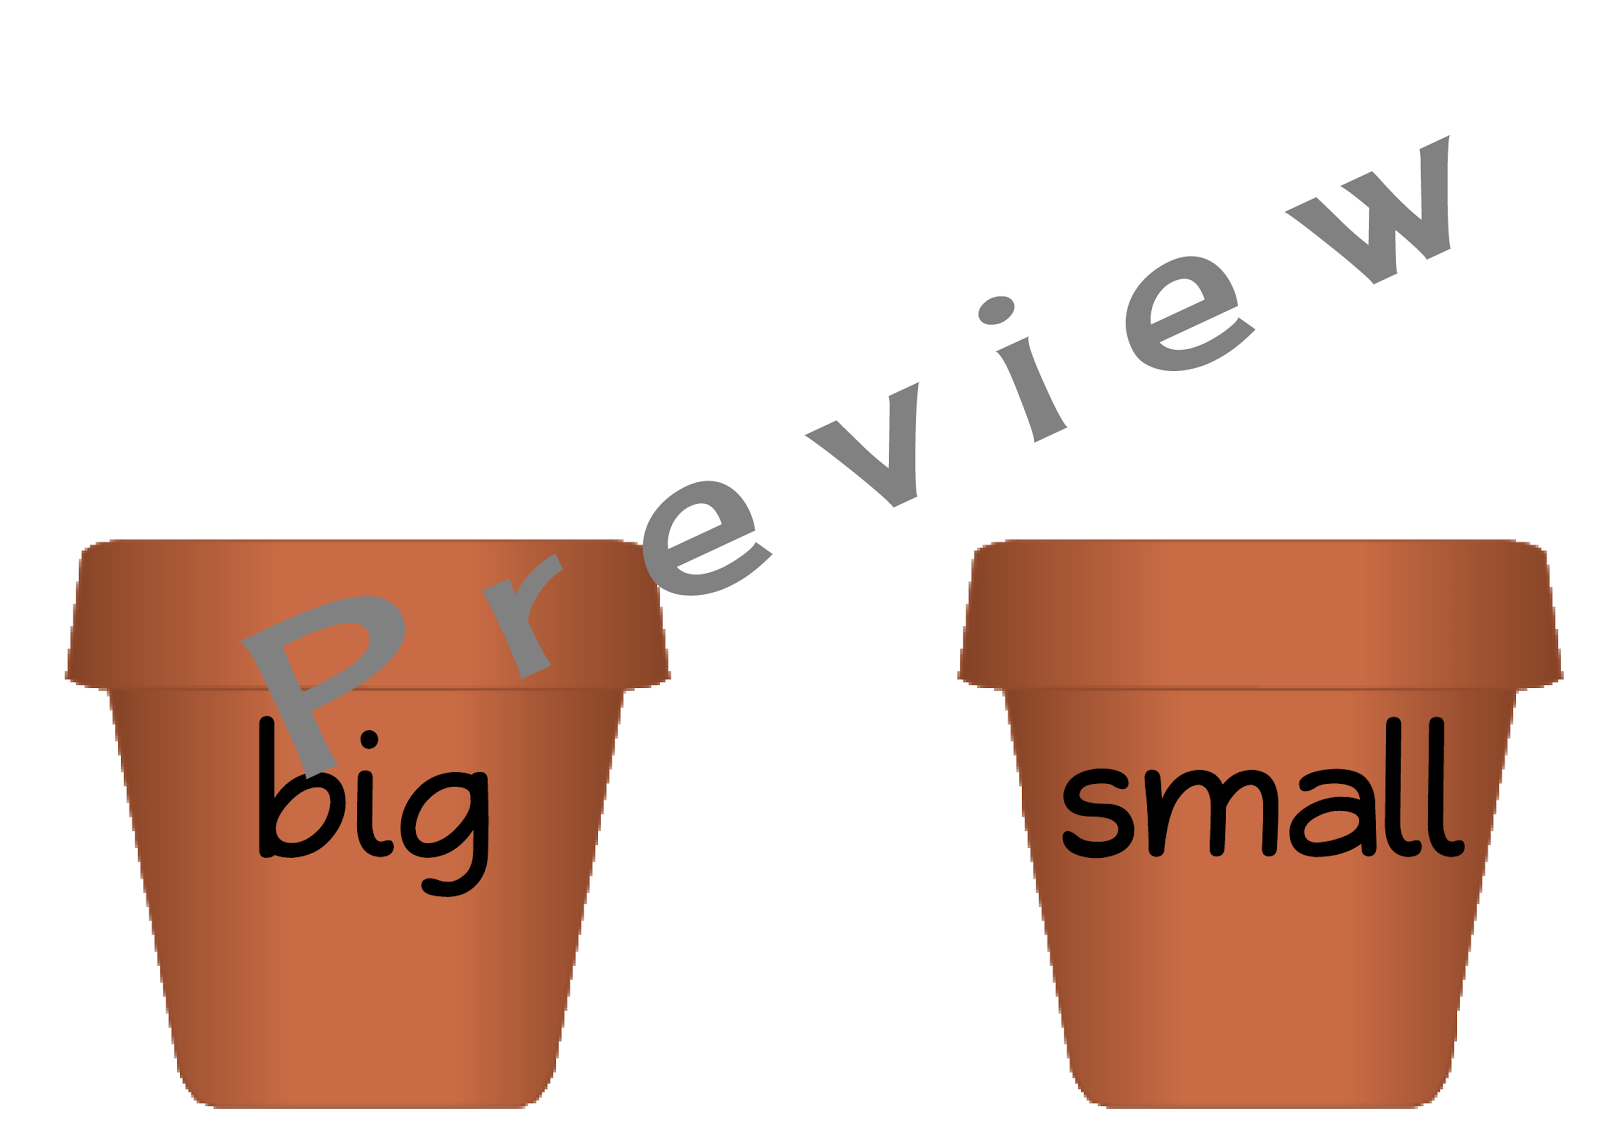 For each flowerpot, there are four flowers with less common synonyms: